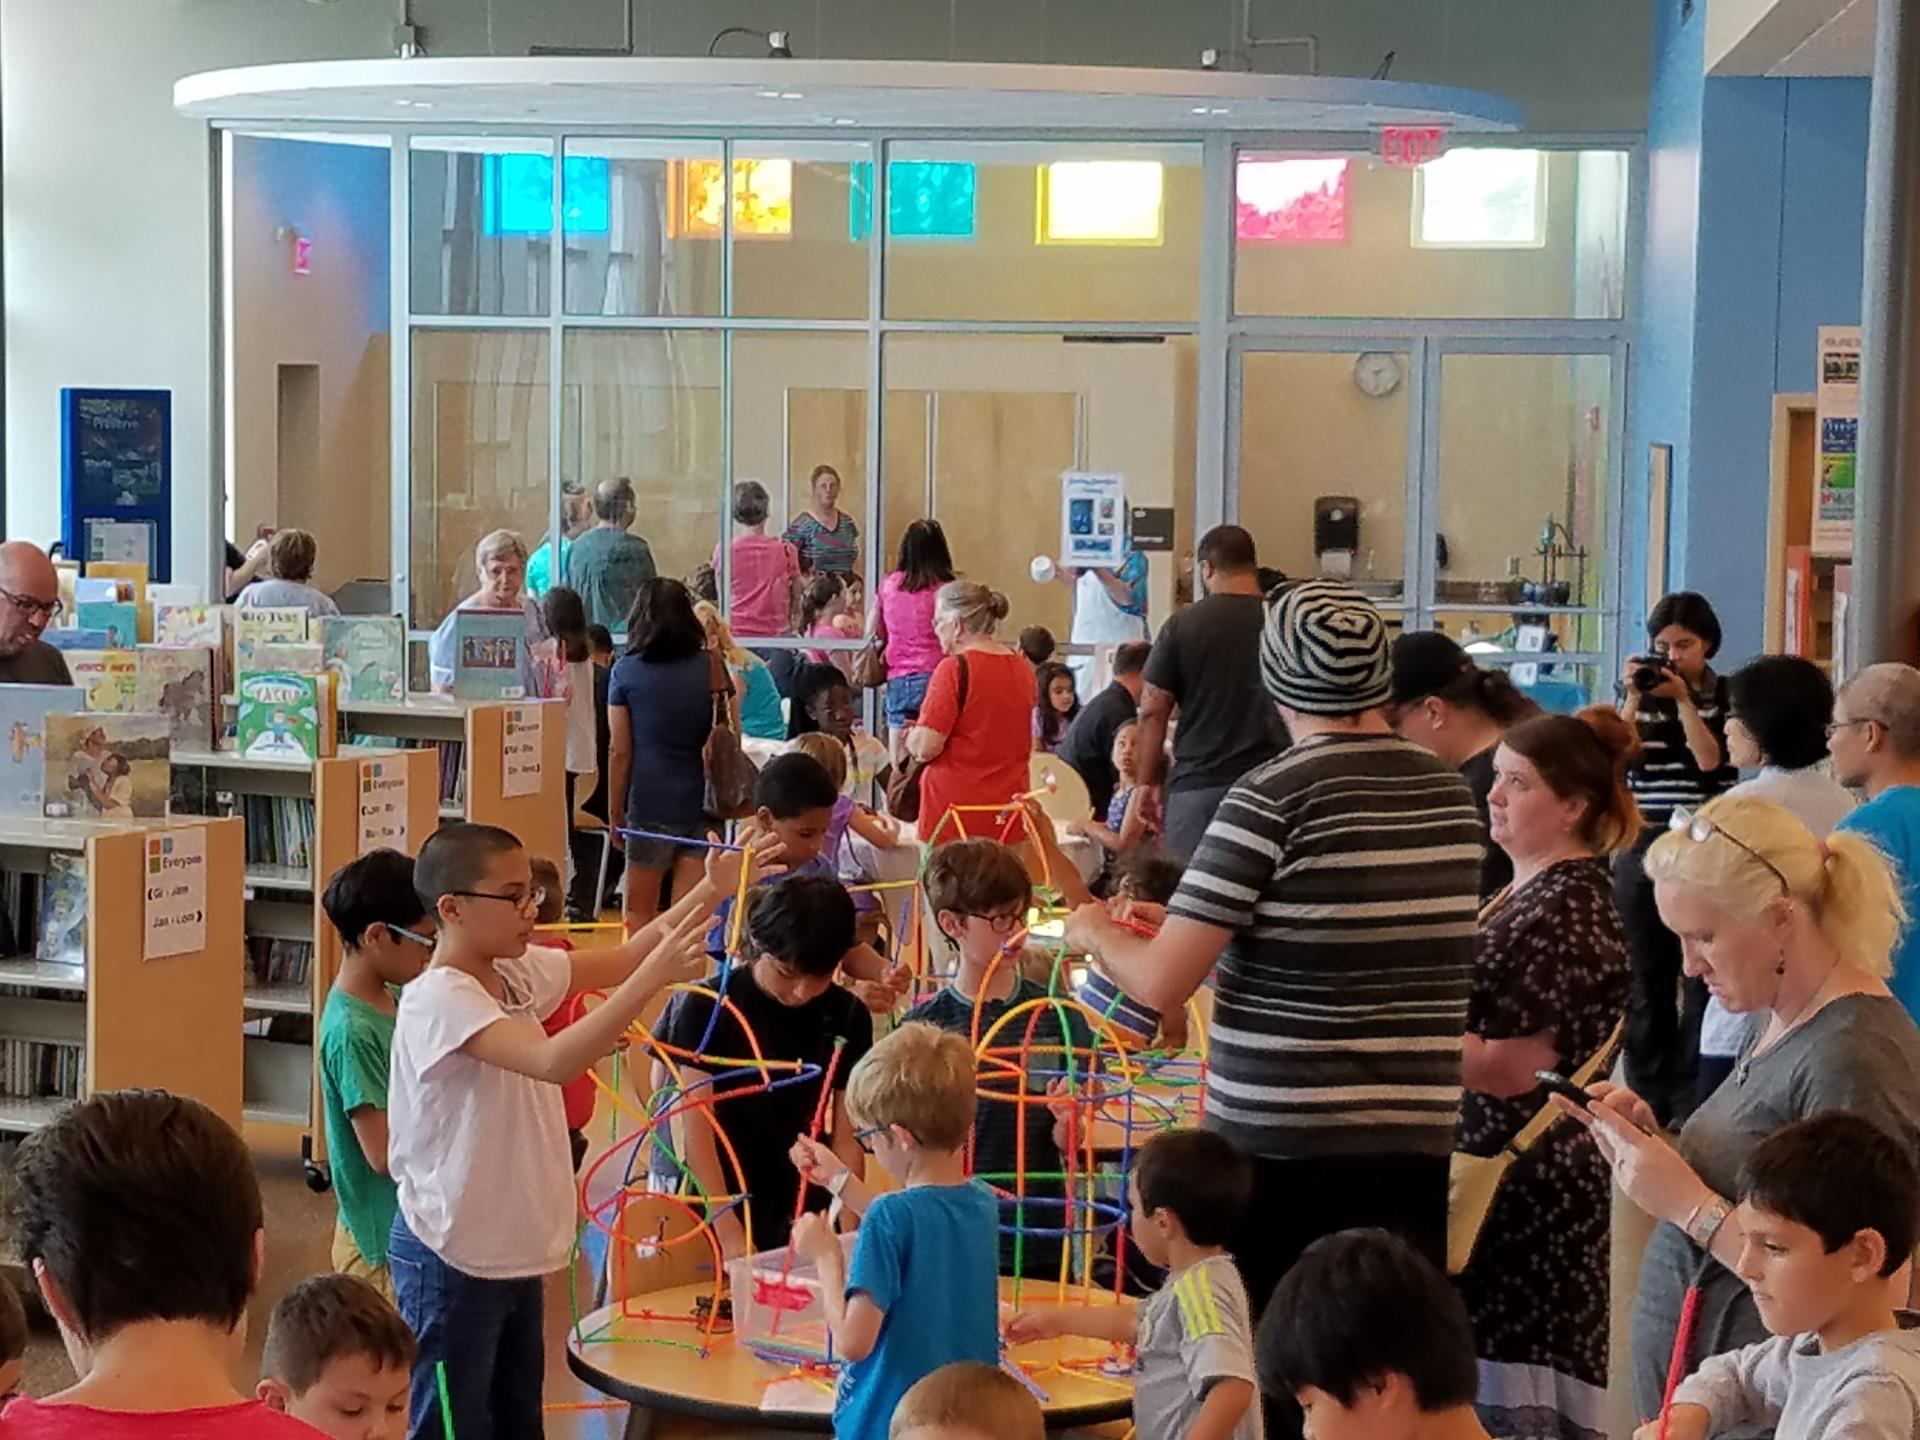 Children's room during Maker Pfest